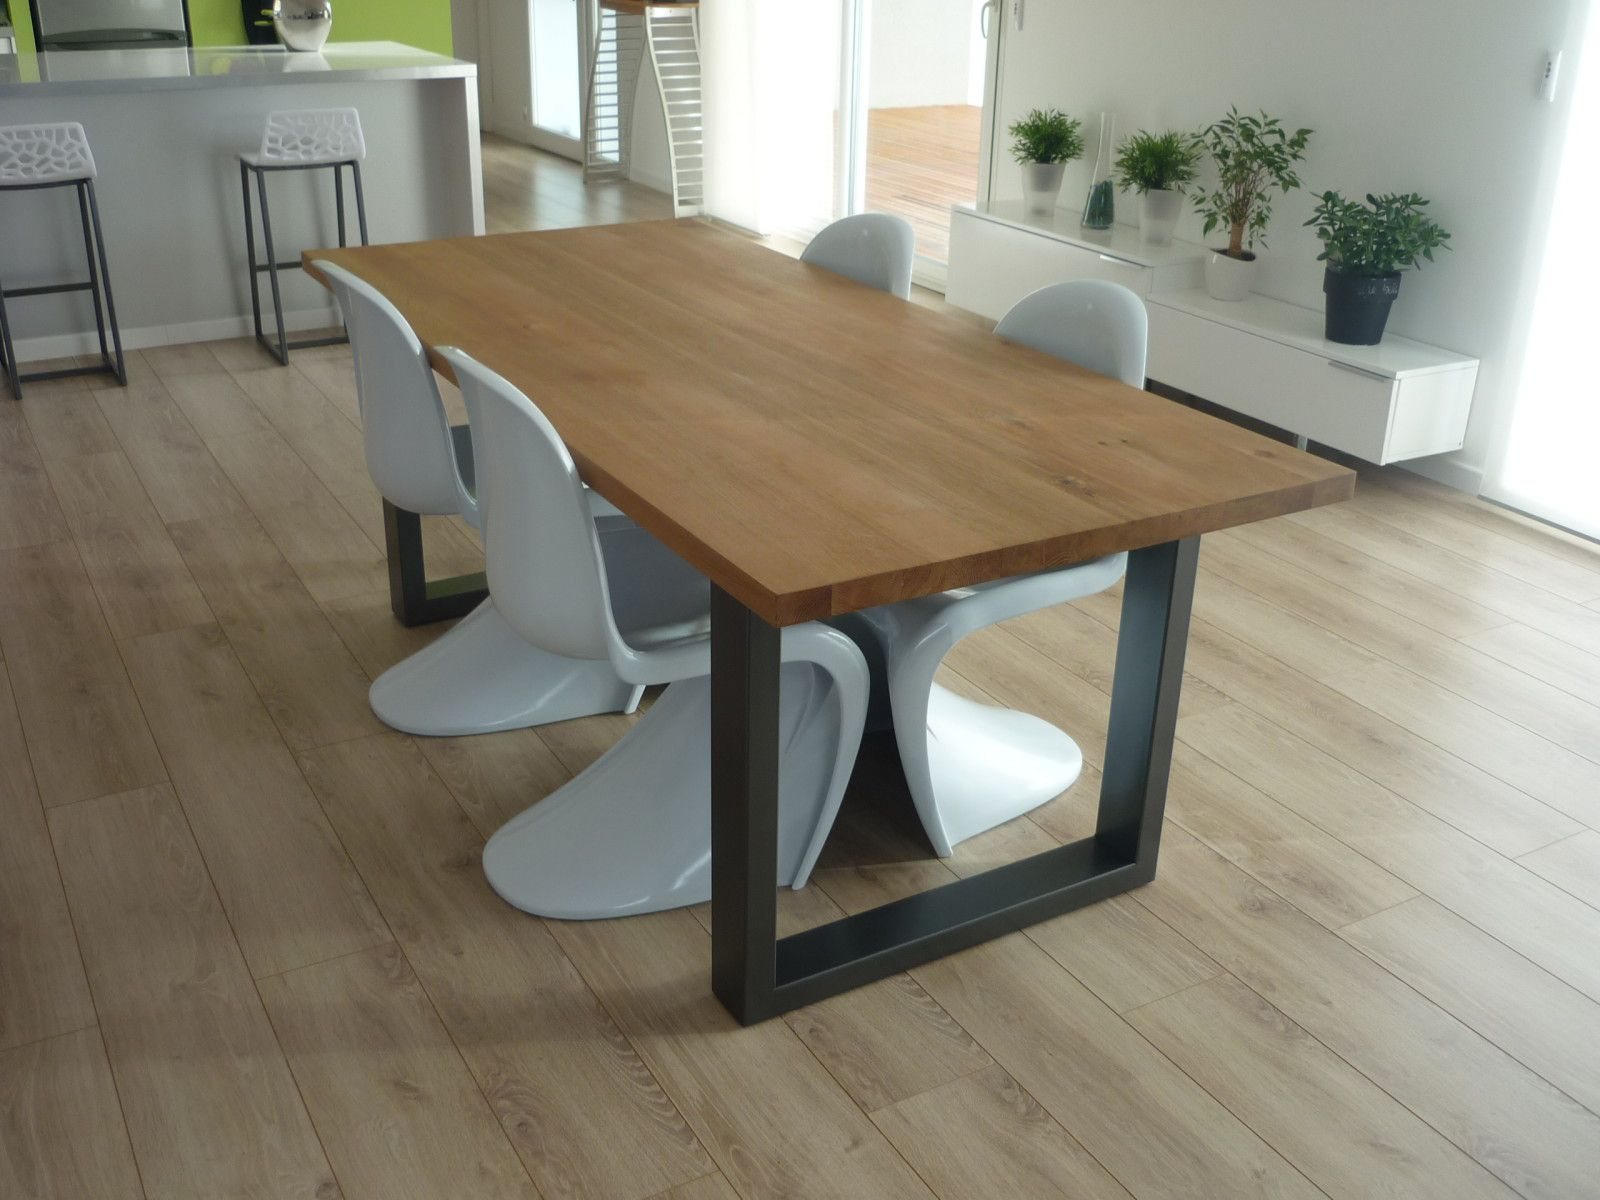 Table personnes - Table ronde 6 personnes ...